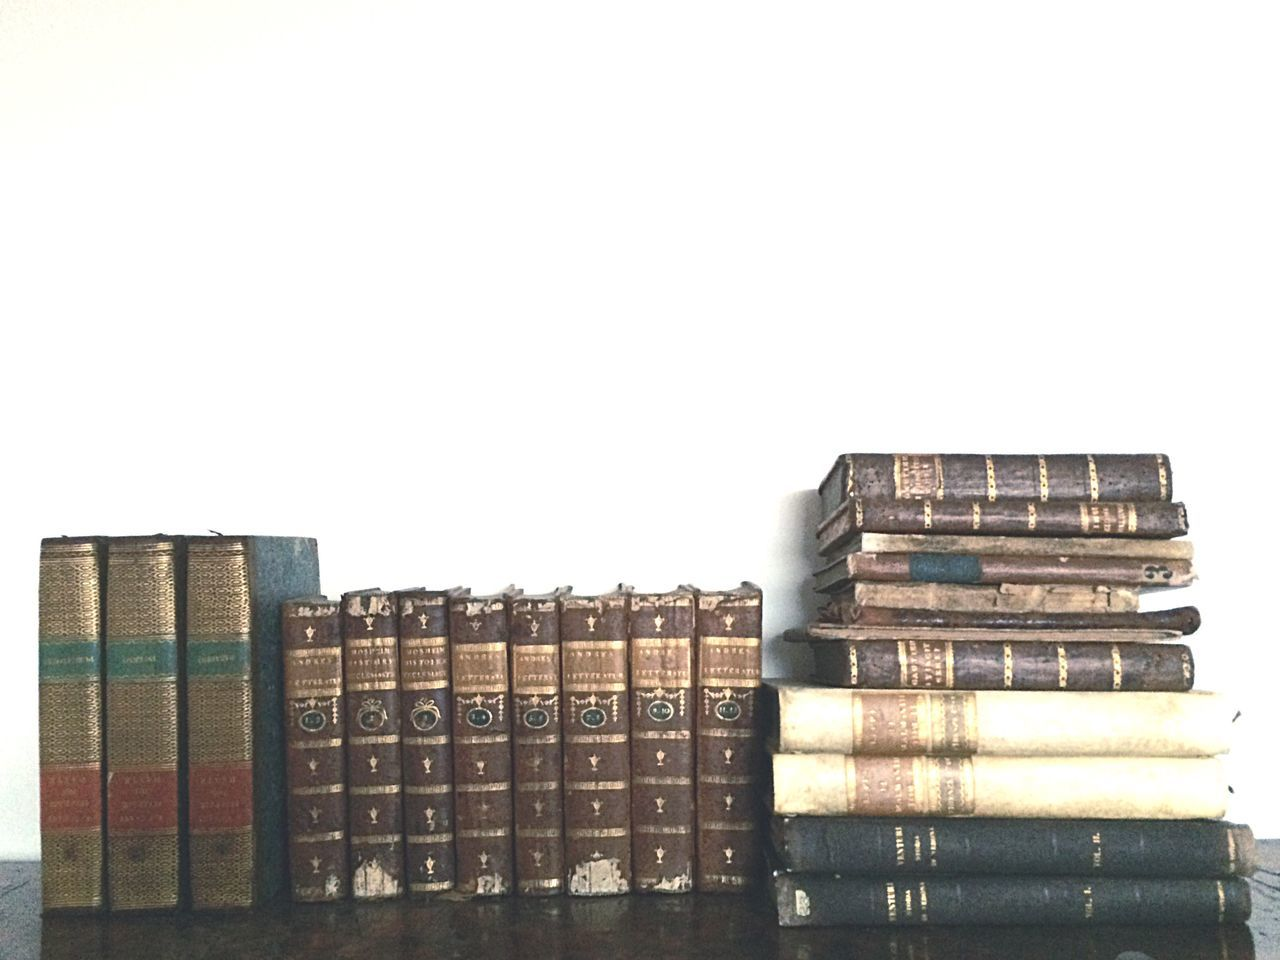 Everything In Its Place Books Ancient Books XV Century Old Books Old Charm Brown And Gold Gold Details Piled Books Organization Decor Home Decor Unusual Decor Small Detail Vintage Decor Vintage Stylish Small Things Daily Inspiration